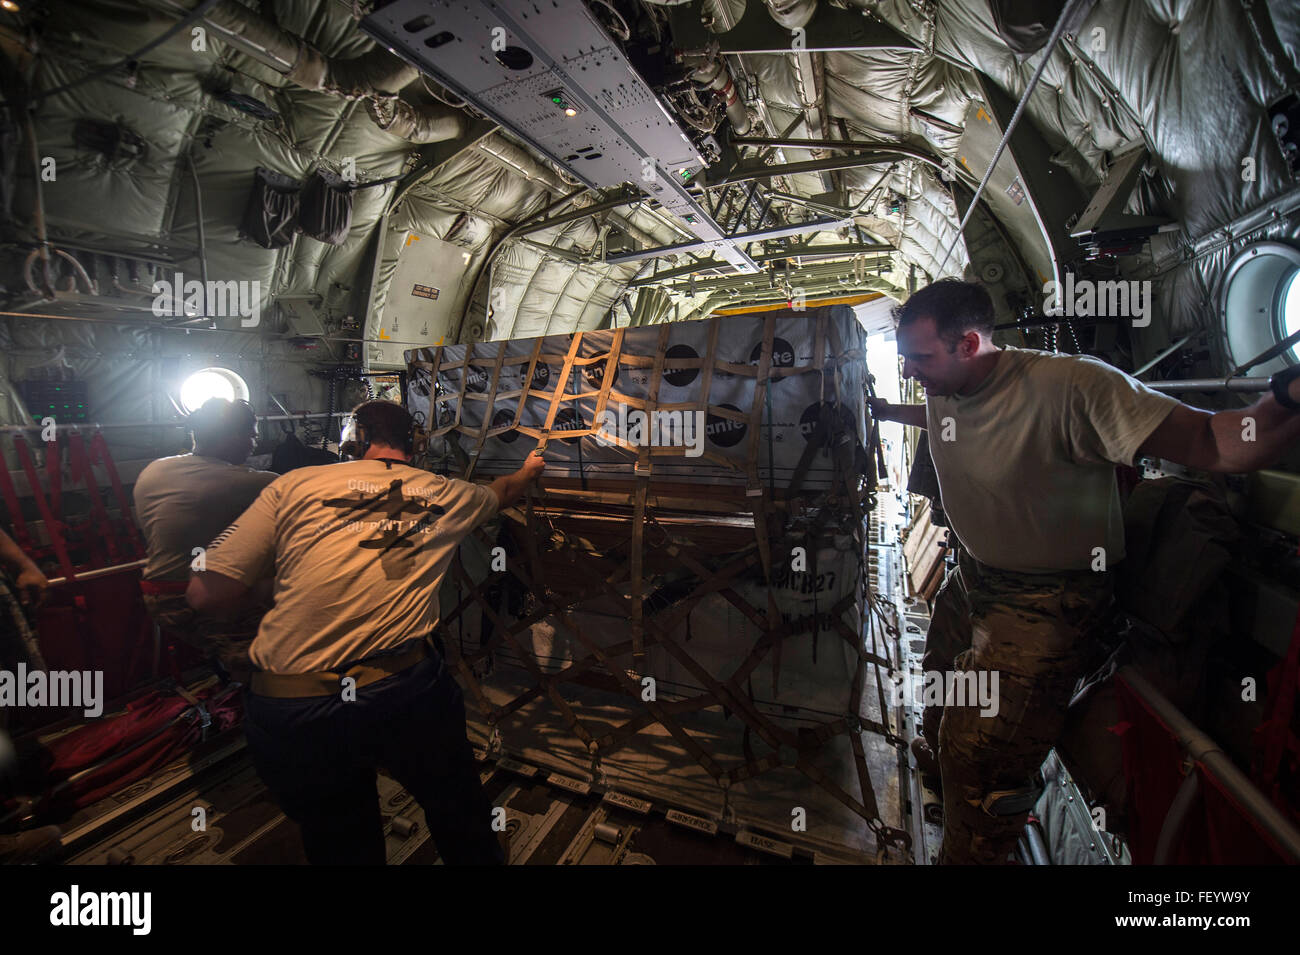 U.S. Air Force loadmasters from the 75th Expeditionary Airlift Squadron load cargo into a C-130 Hercules at Camp - Stock Image